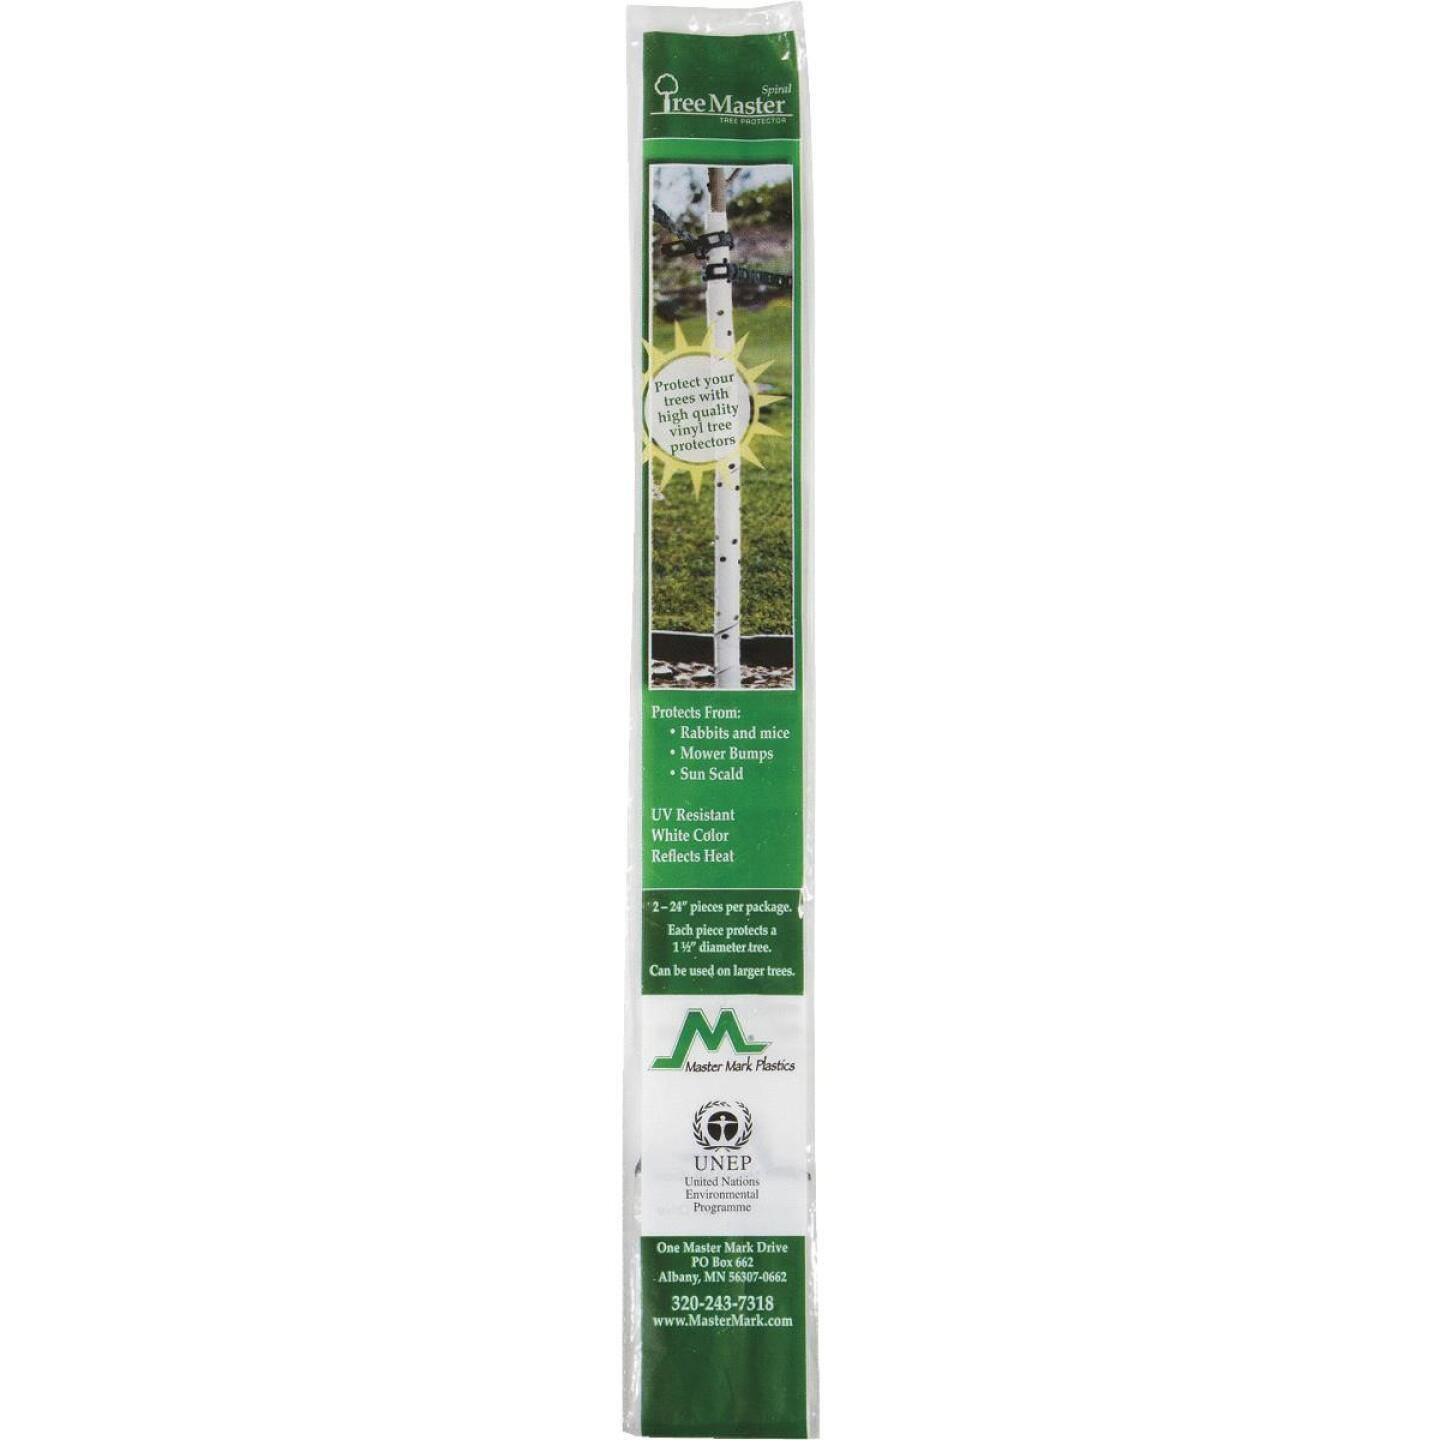 Master Mark Tree Master 4 In. W. x 24 In. L. Tree Guard Image 2